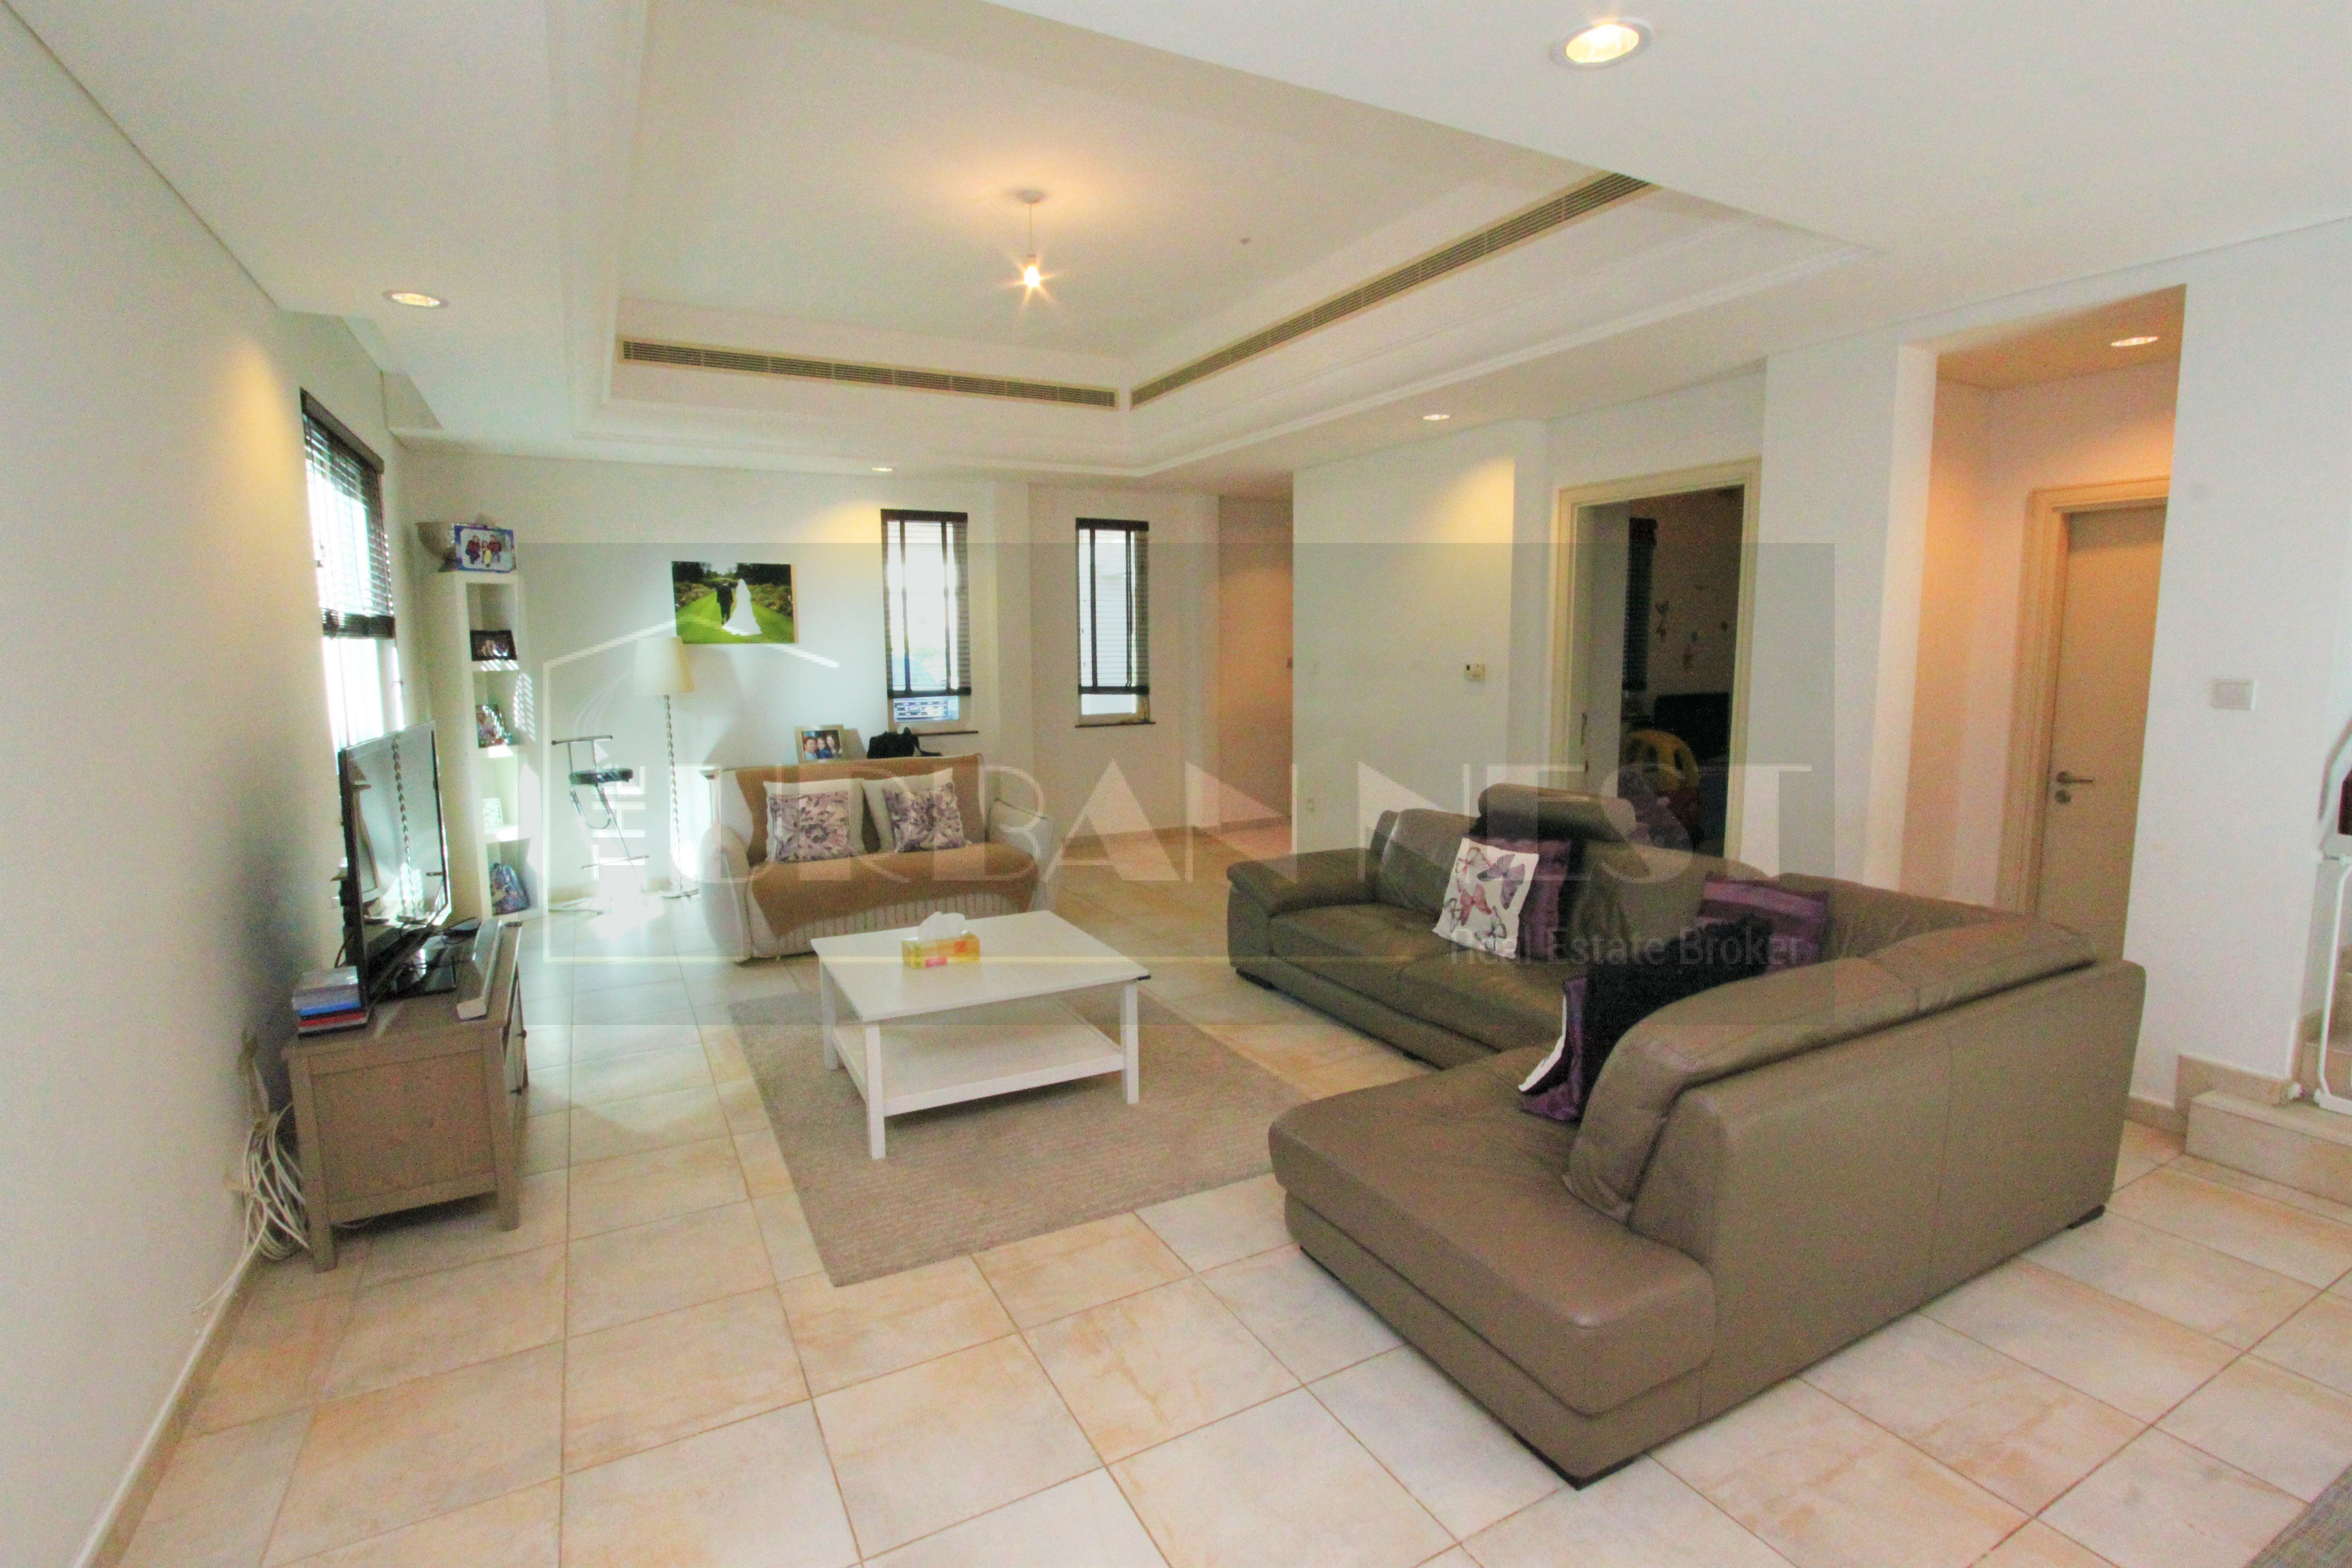 Immaculate Townhouse For Sale In Oliva..